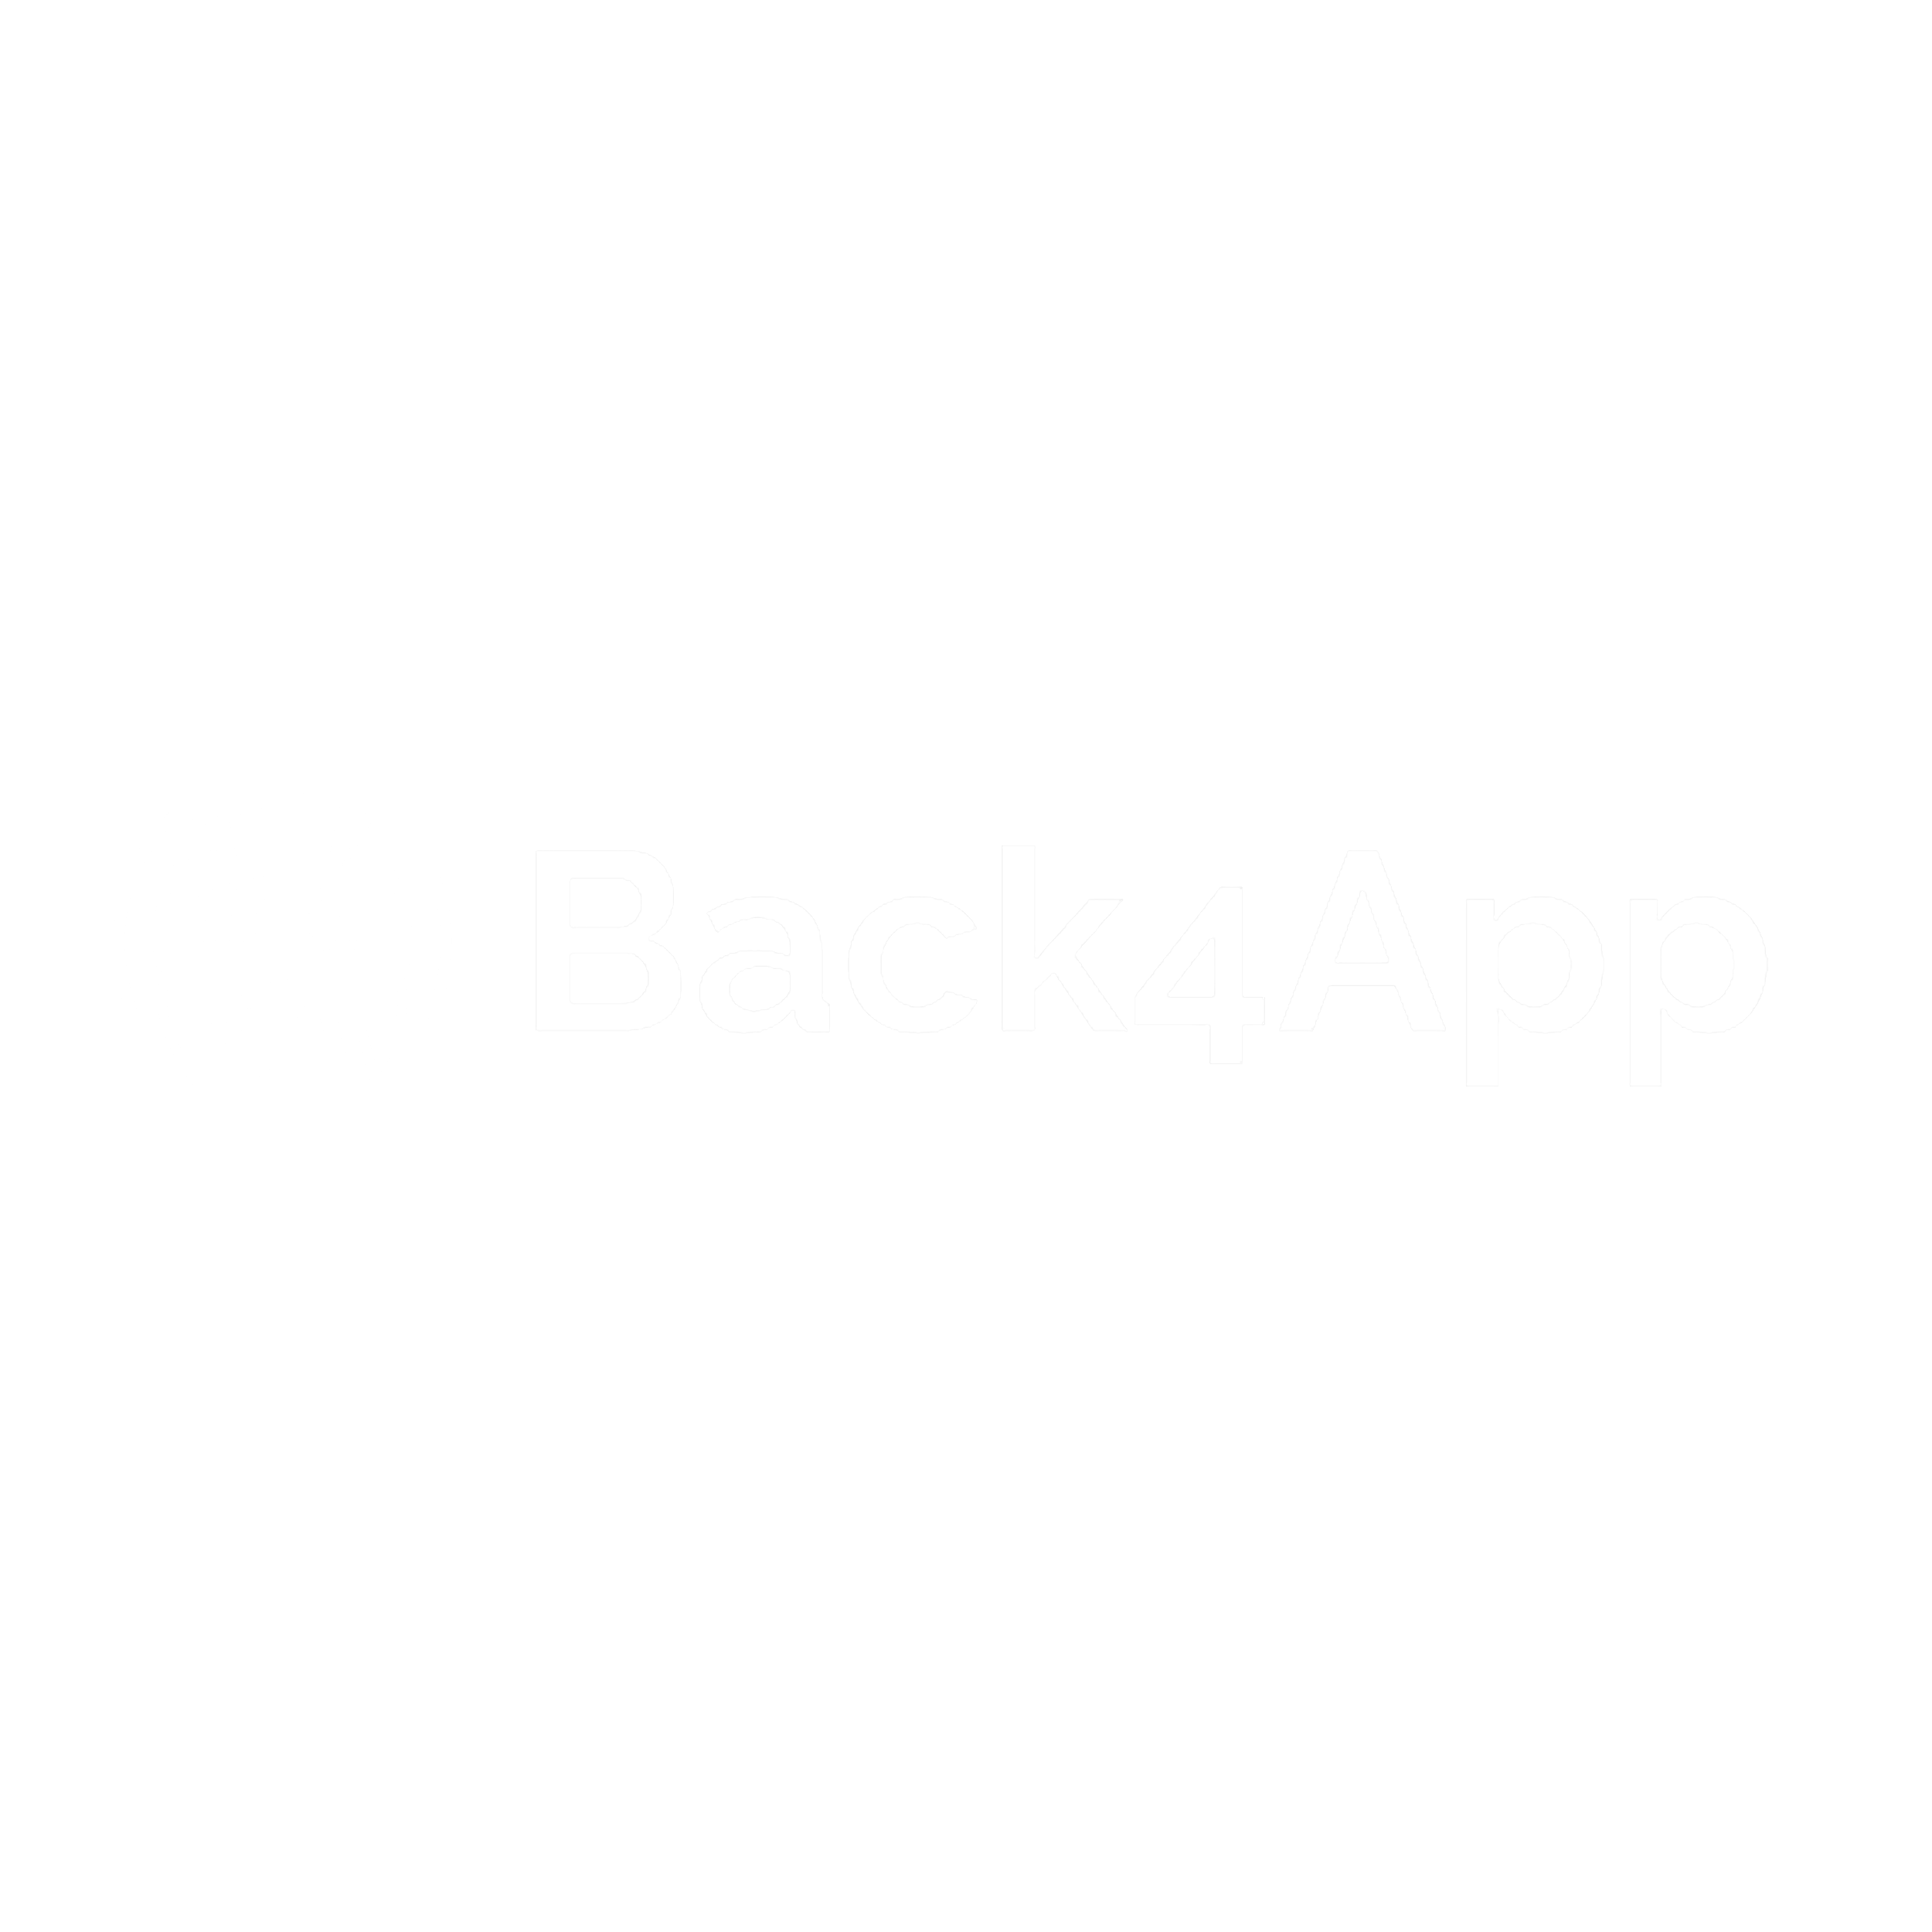 Back4App  is a platform that helps developers create apps up to 4 times faster. It automates and accelerates back-end app development with no infrastructure hassles. Back4App is the world's most popular Parse Server platform. It allows development teams to focus on the creation of better user experiences instead of worrying about complex infrastructure.